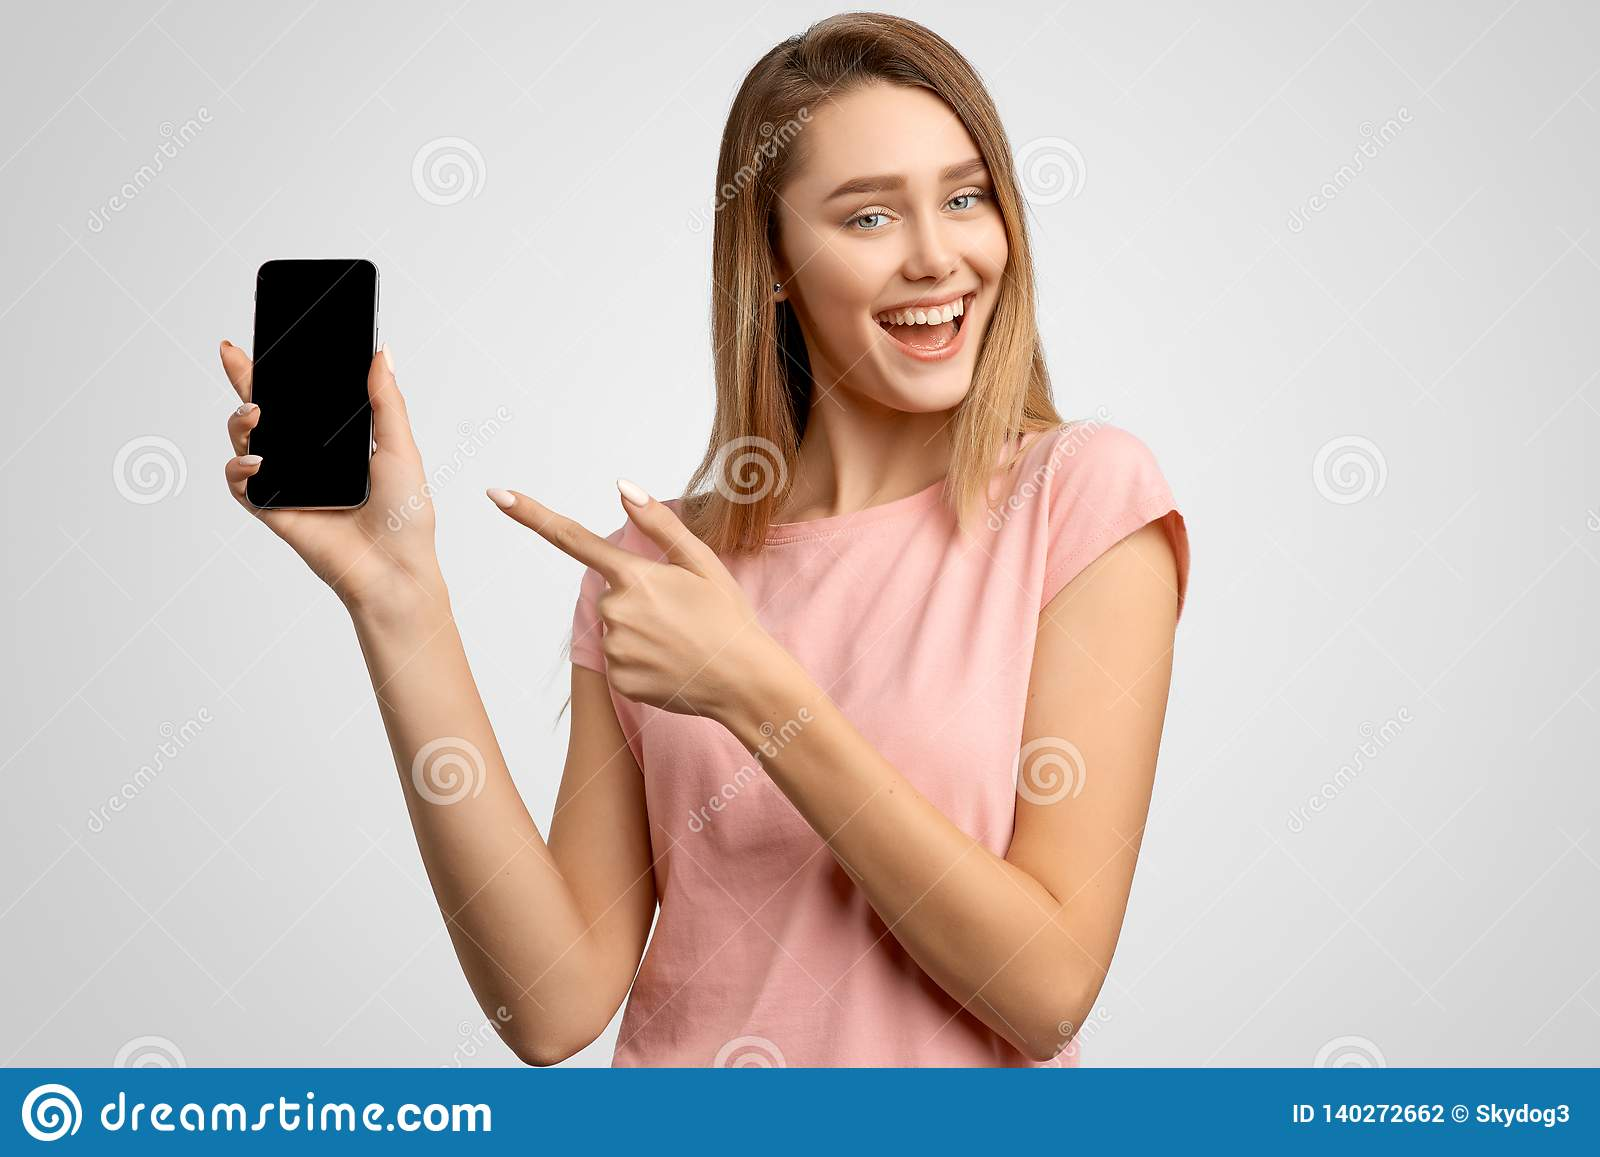 Handsome Woman With Index Finger Shows Blank Phone Screen Where You Can Place Your Ad Positive Young Girl Smiles Snow White Smile Stock Photo Image Of Digital Business 140272662